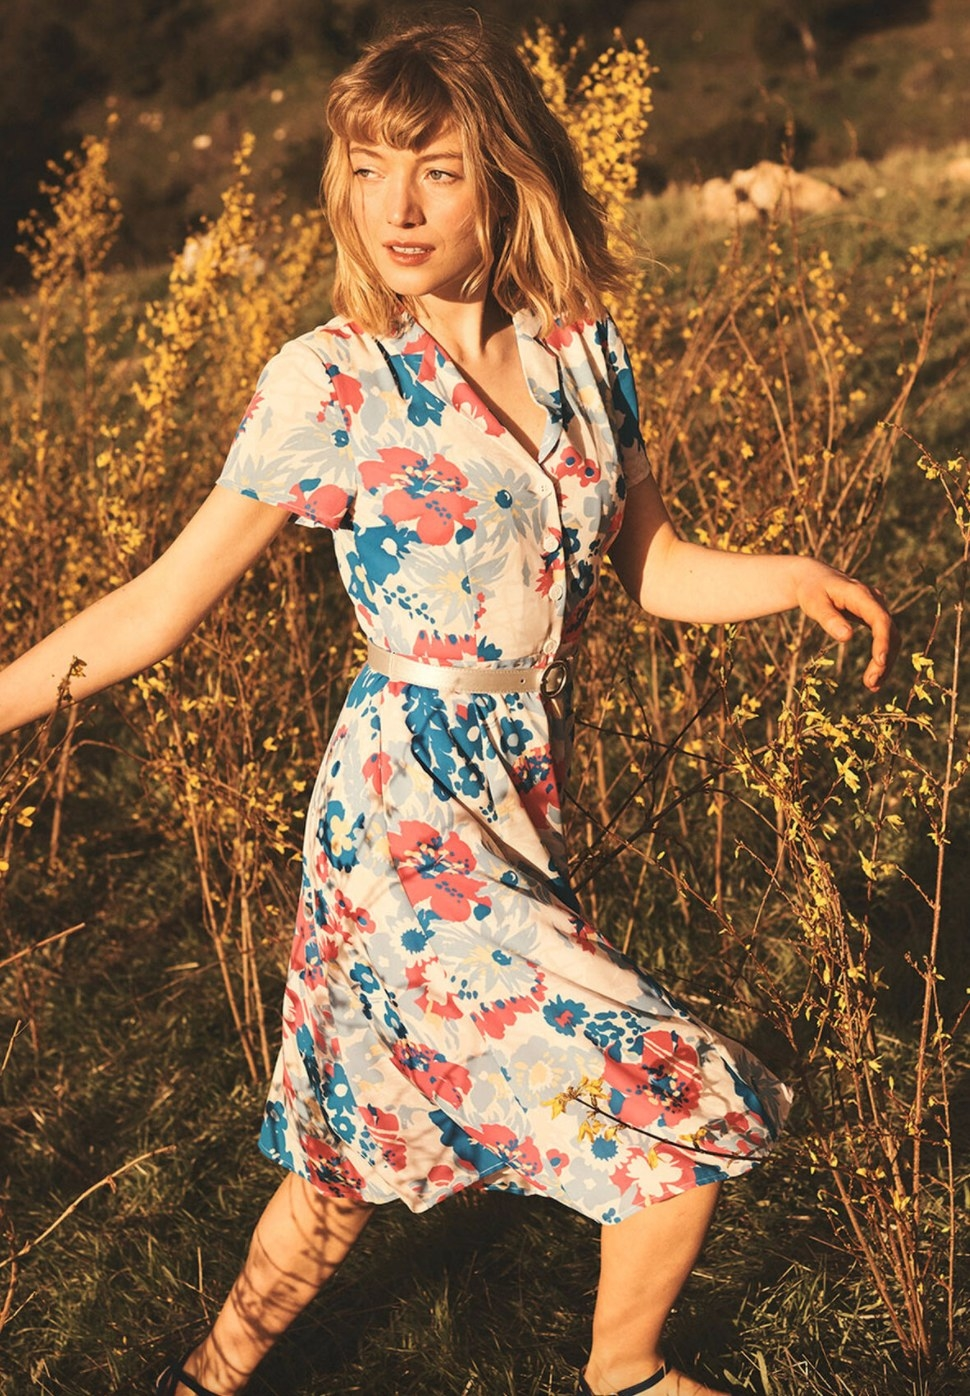 The white, blue, and coral floral shirt dress worn by a model